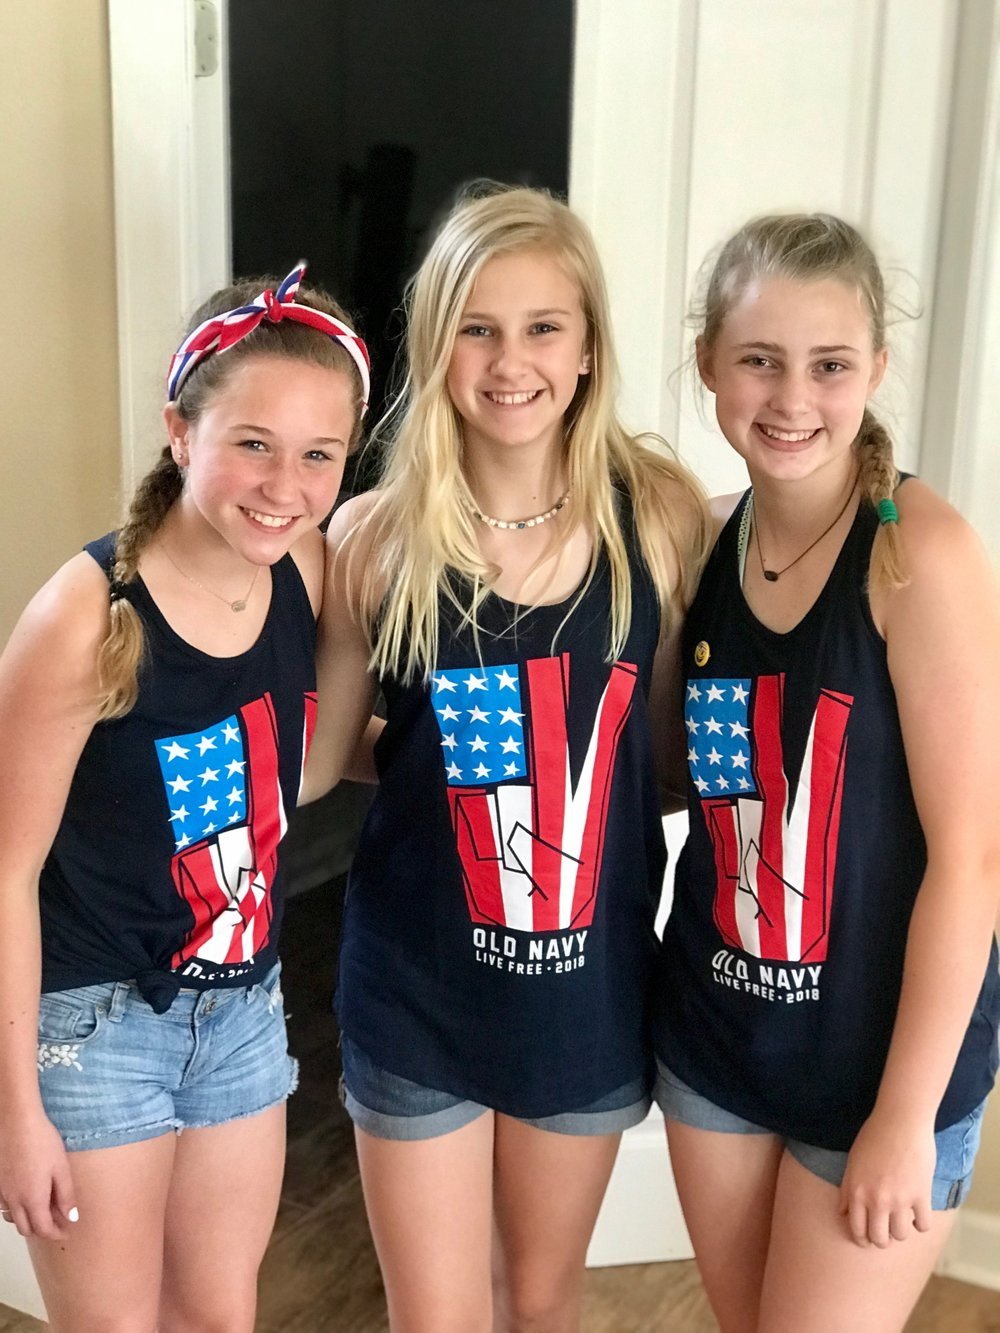 These girls have been friends since they were babies. Love their hearts and their friendship.